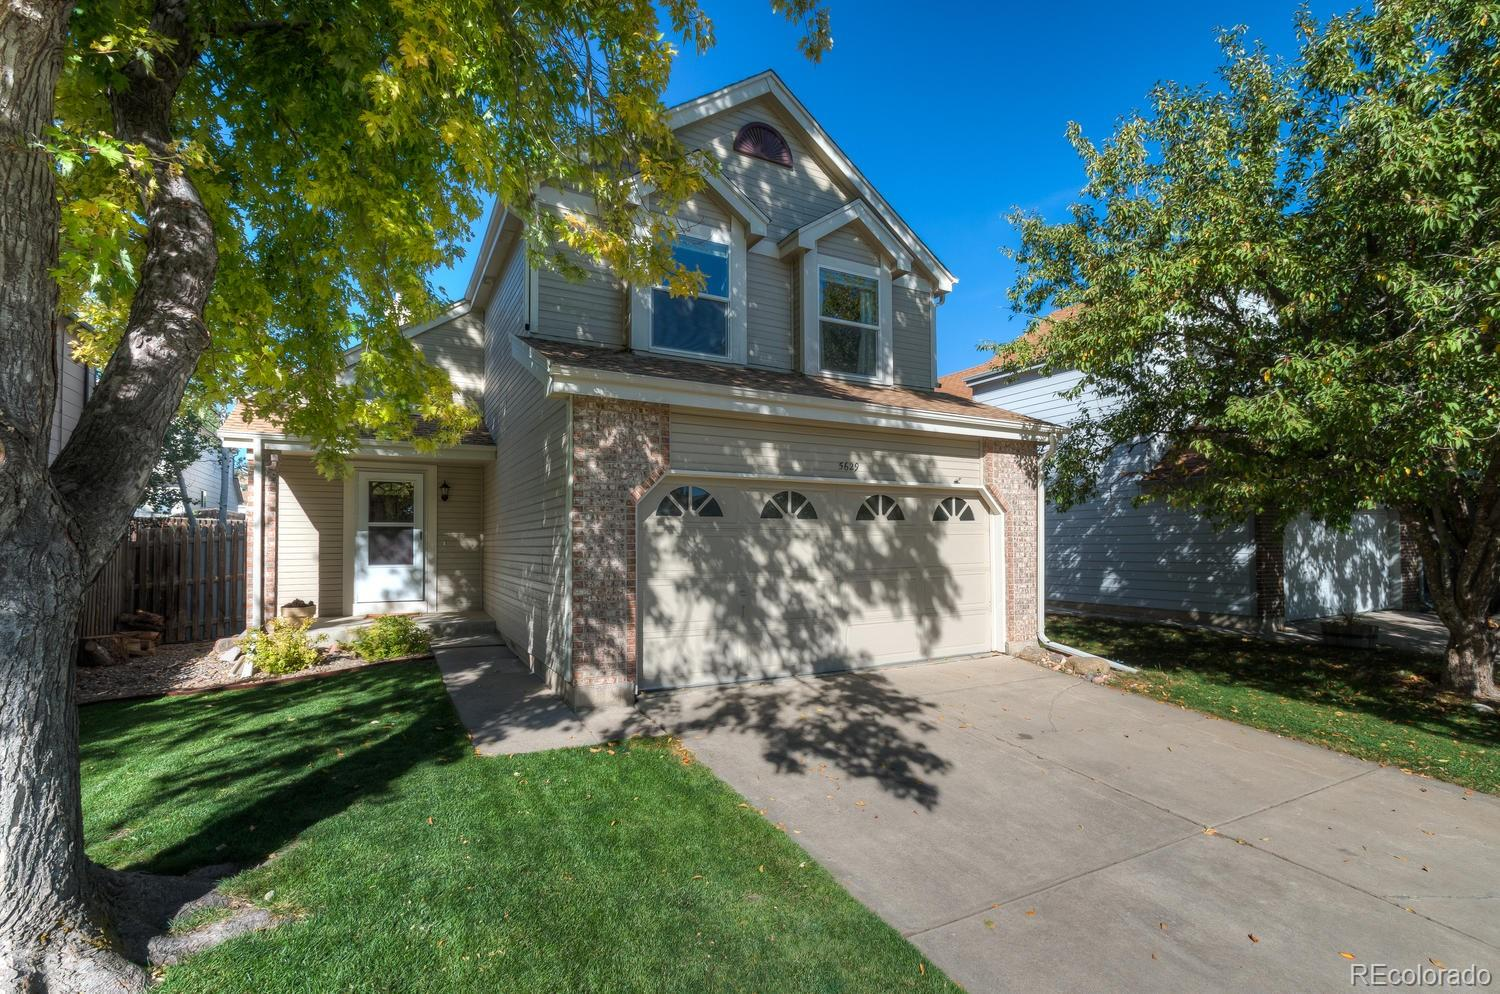 MLS# 2006537 - 2 - 5629 S Youngfield Way, Littleton, CO 80127